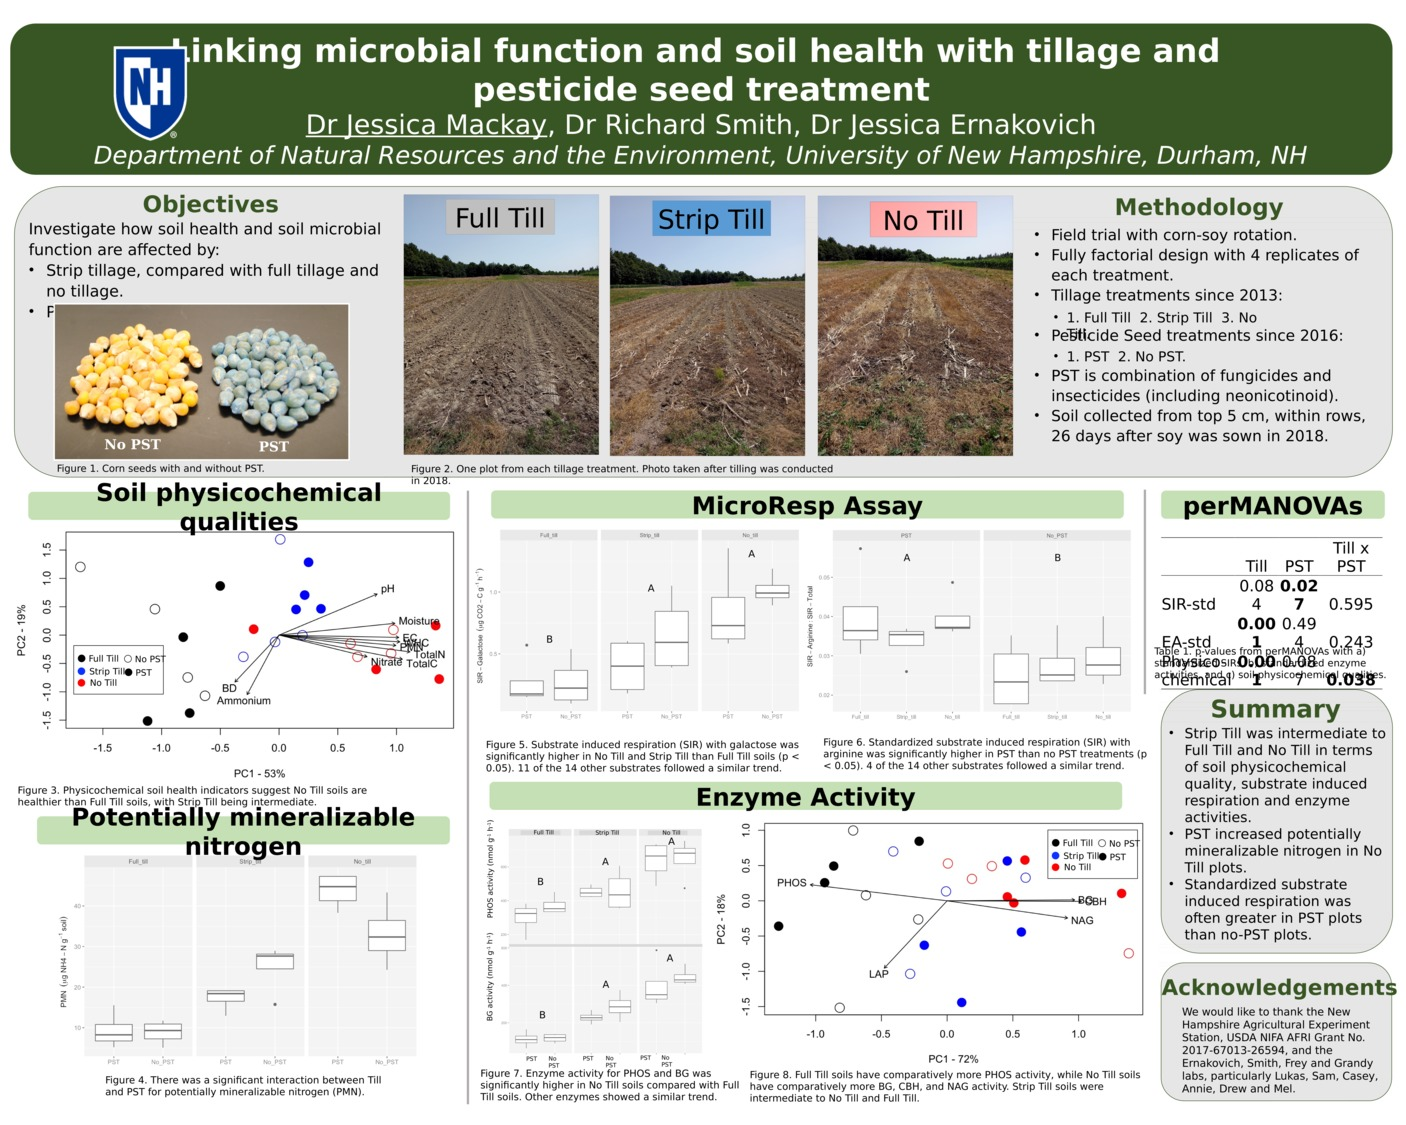 Linking Microbial Function And Soil Health With Tillage And Pesticide Seed Treatment by jem1101